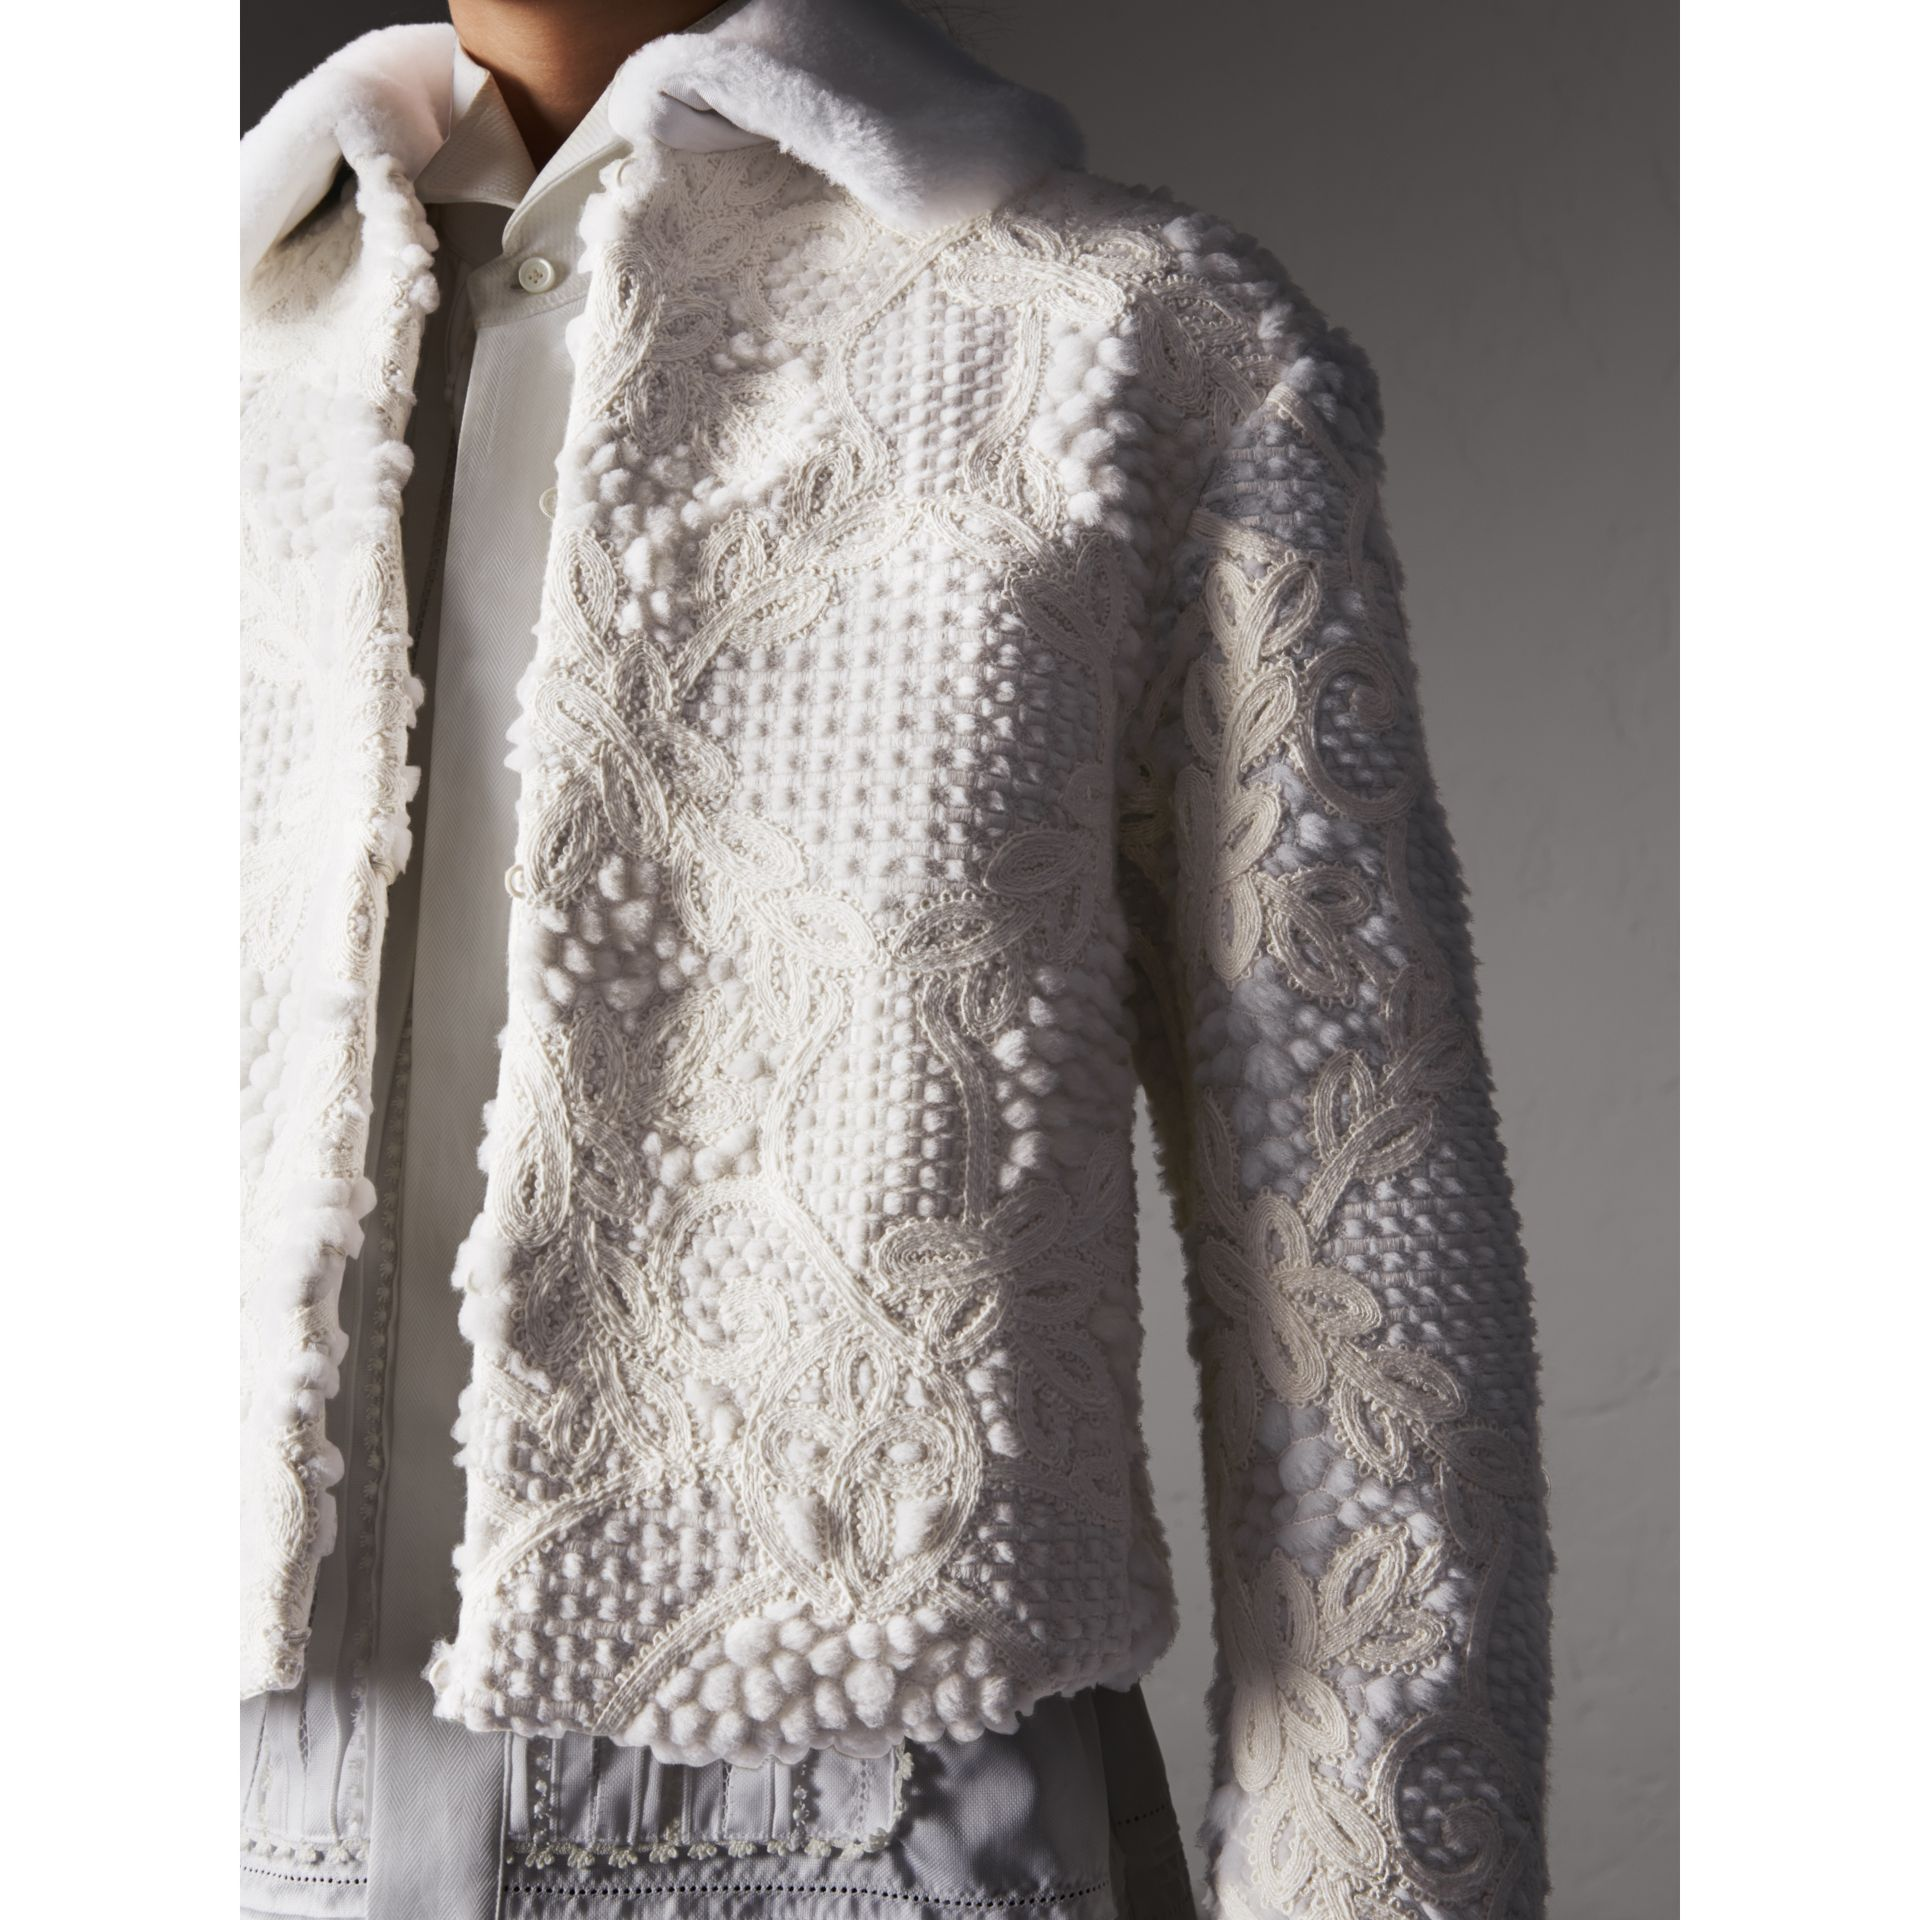 Macramé Lace-embellished Shearling Jacket in White - Women | Burberry - gallery image 4